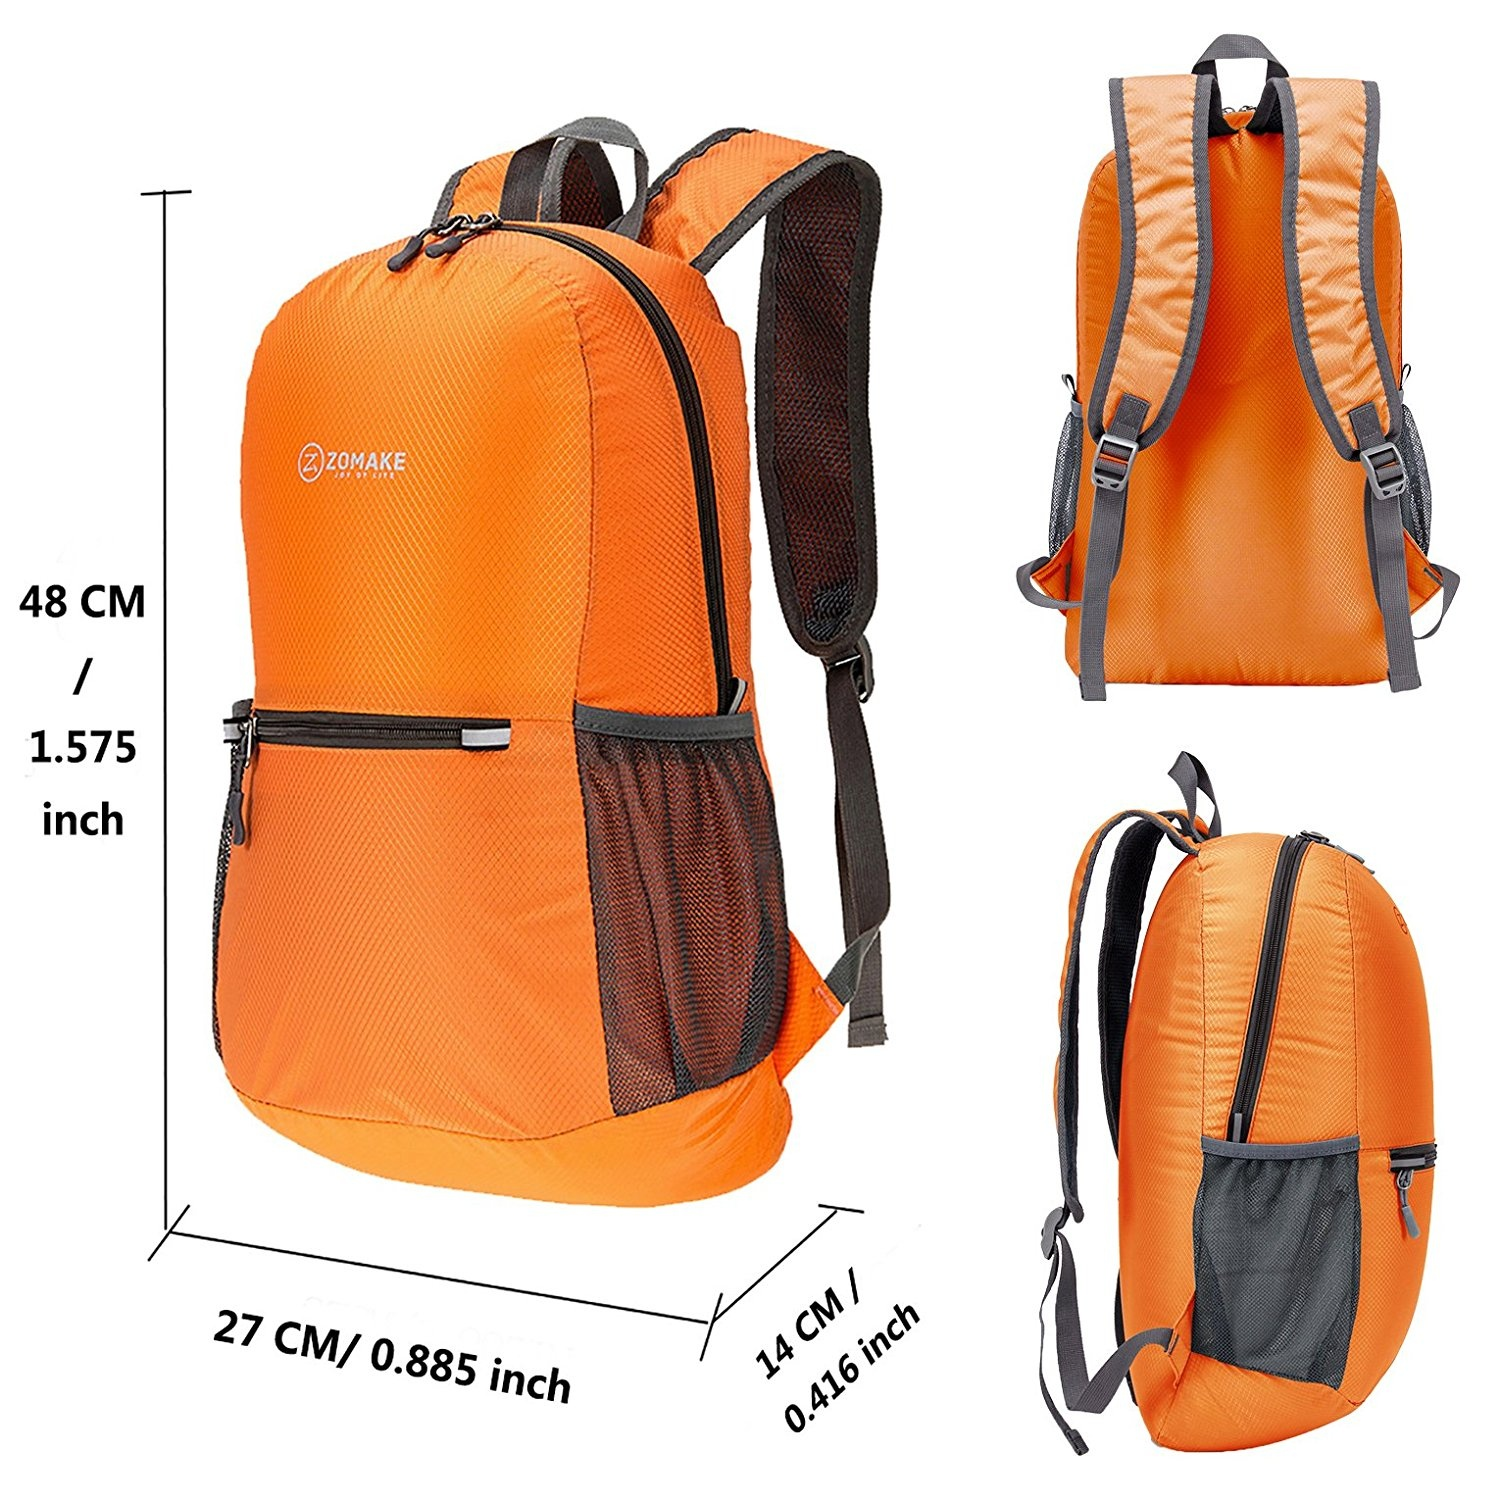 4d377ea09db4 ZOMAKE Ultra Lightweight Packable Backpack Water Resistant Hiking  Daypack,Small Backpack Handy Foldable Camping Outdoor Backpack Little Bag